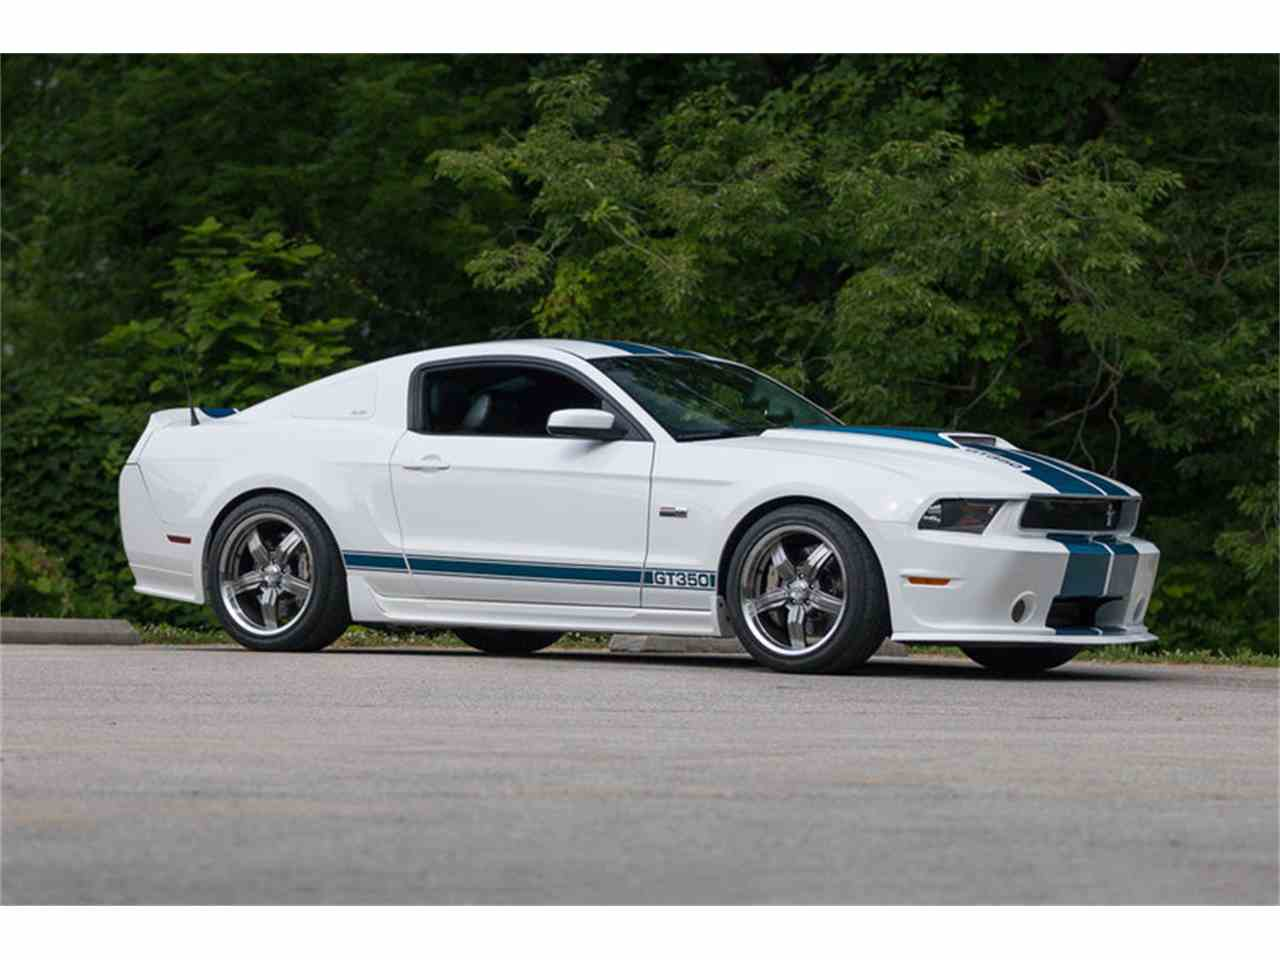 Large Picture of '11 Ford Mustang GT350 - $89,995.00 Offered by Fast Lane Classic Cars Inc. - LCCC